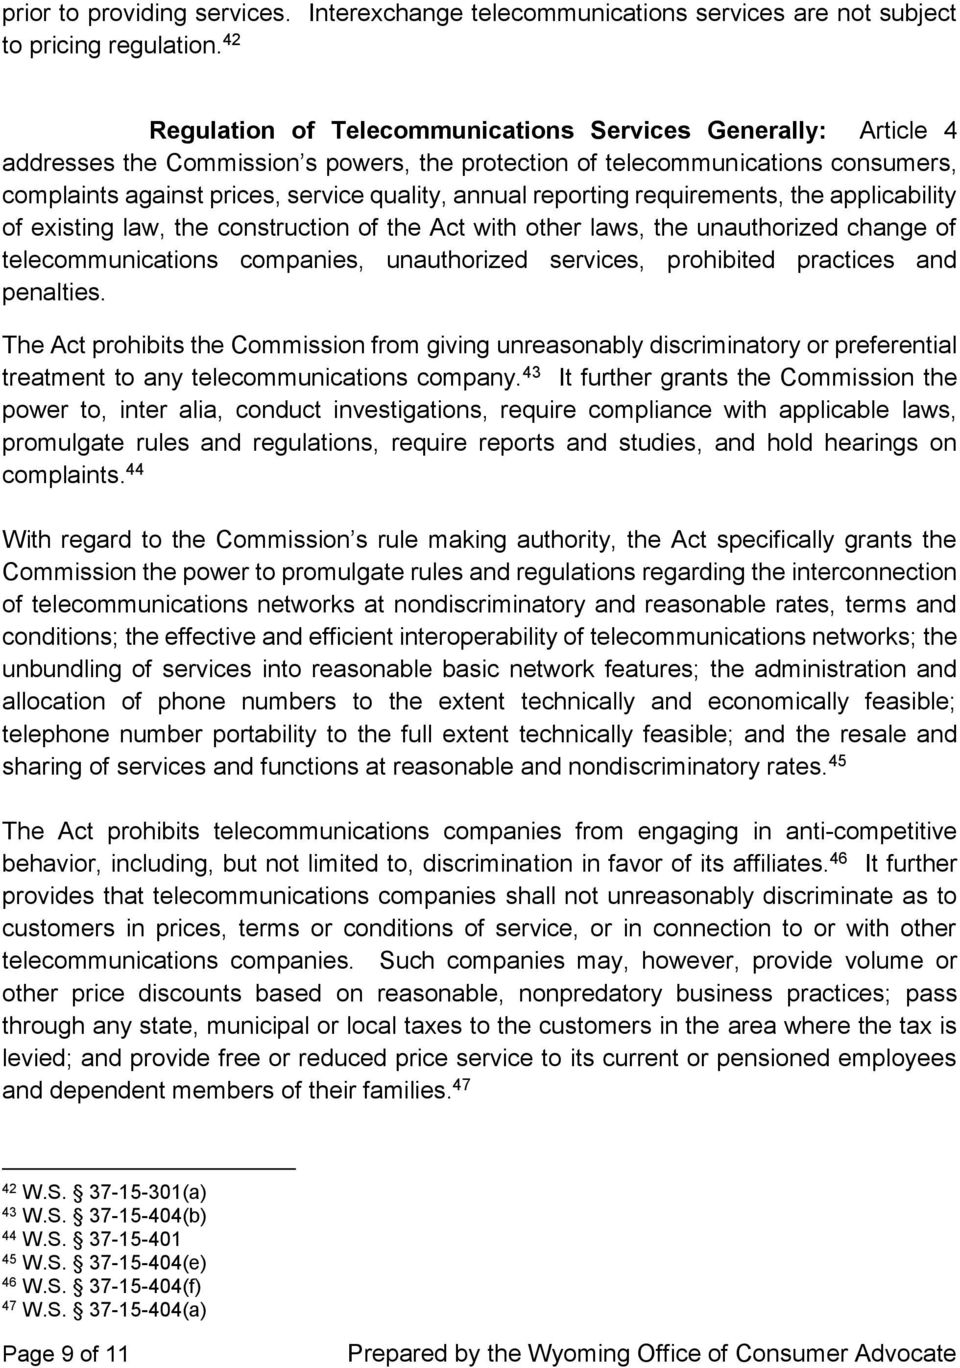 reporting requirements, the applicability of existing law, the construction of the Act with other laws, the unauthorized change of telecommunications companies, unauthorized services, prohibited